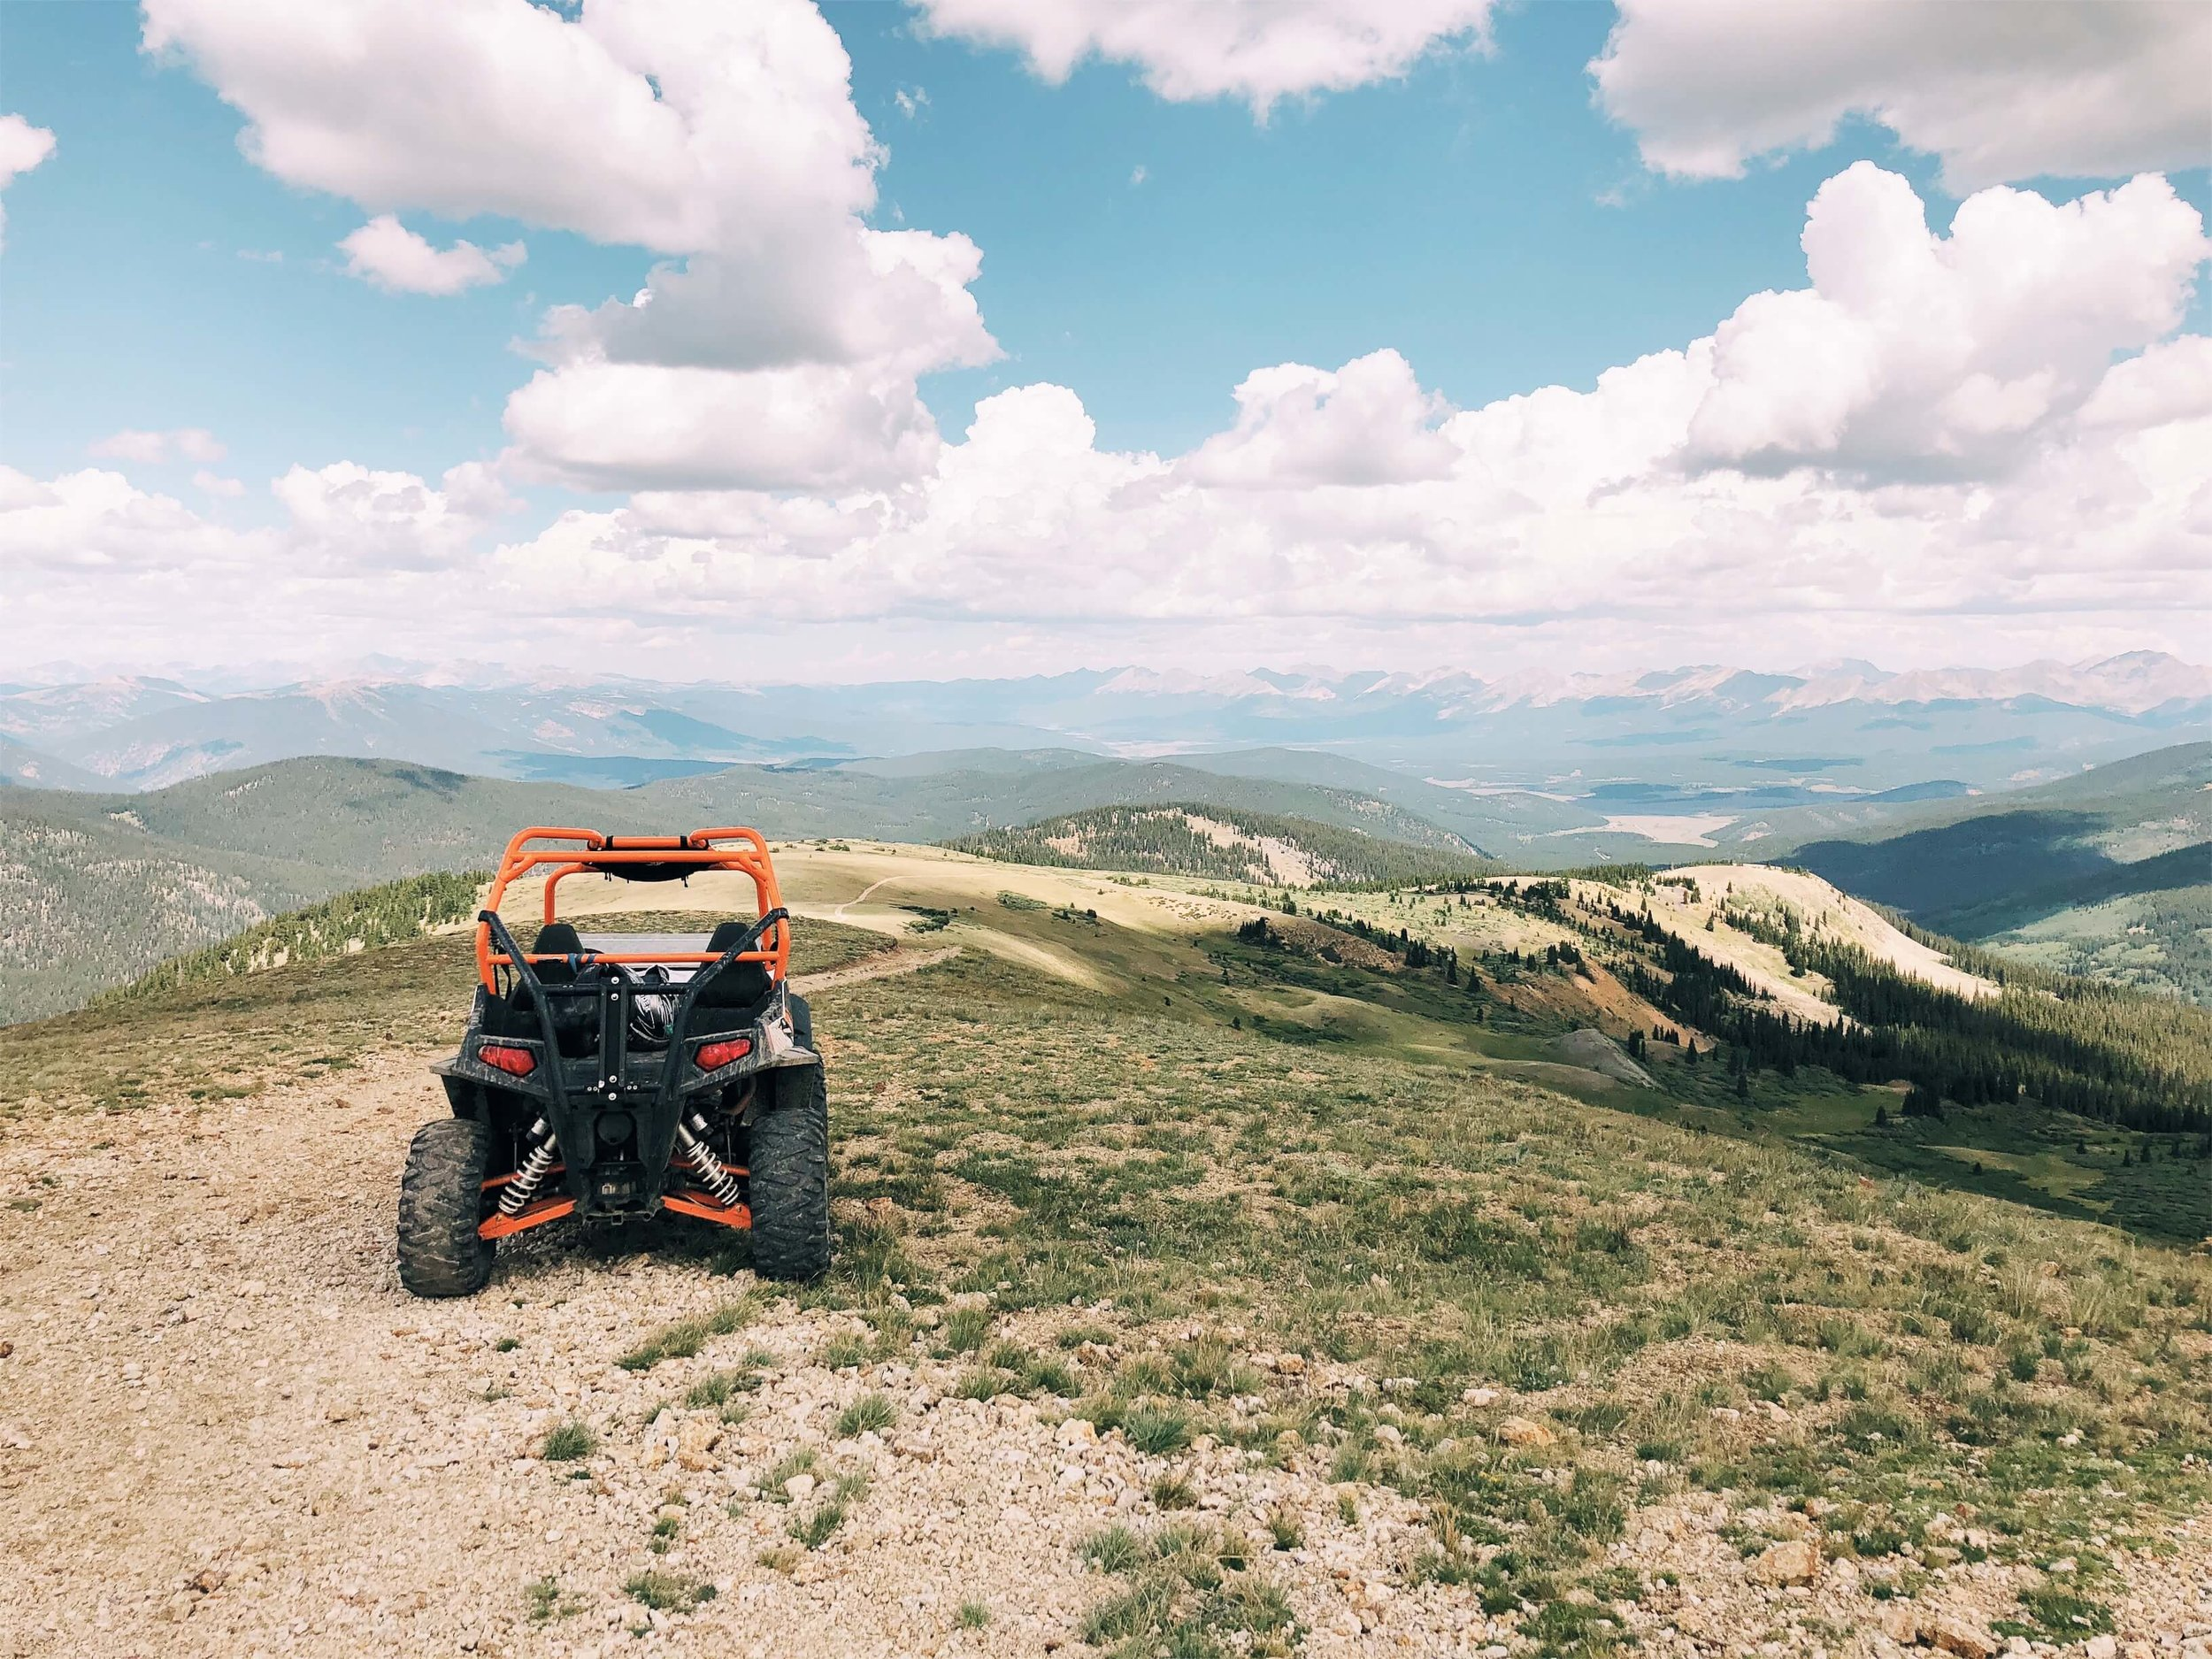 BV Mountain Adventure Rentals side by side